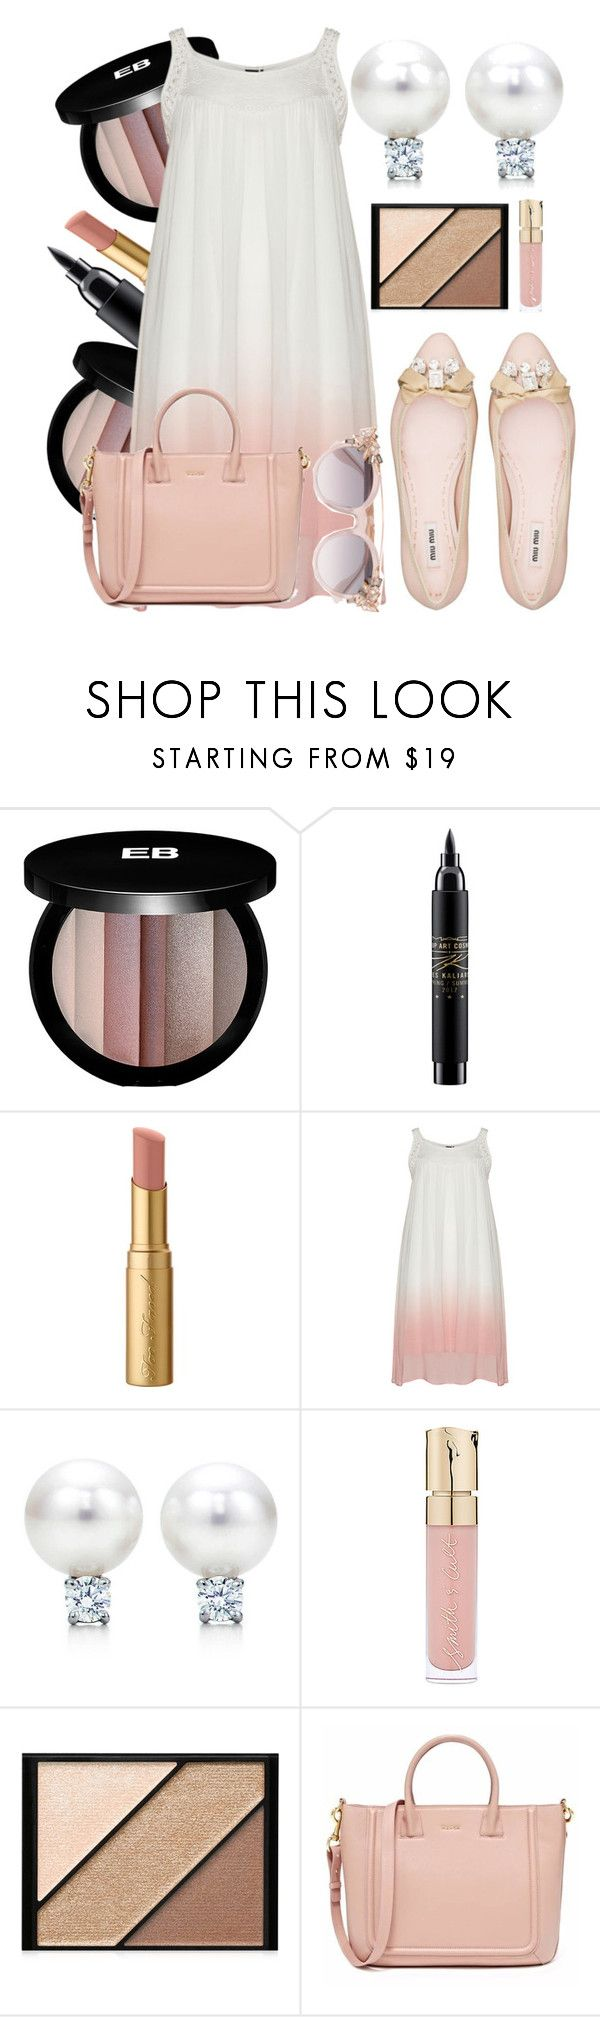 """""""Pregnant ❤"""" by luablackoficial ❤ liked on Polyvore featuring Edward Bess, MAC Cosmetics, Too Faced Cosmetics, Miu Miu, Smith & Cult, Elizabeth Arden and Jimmy Choo"""